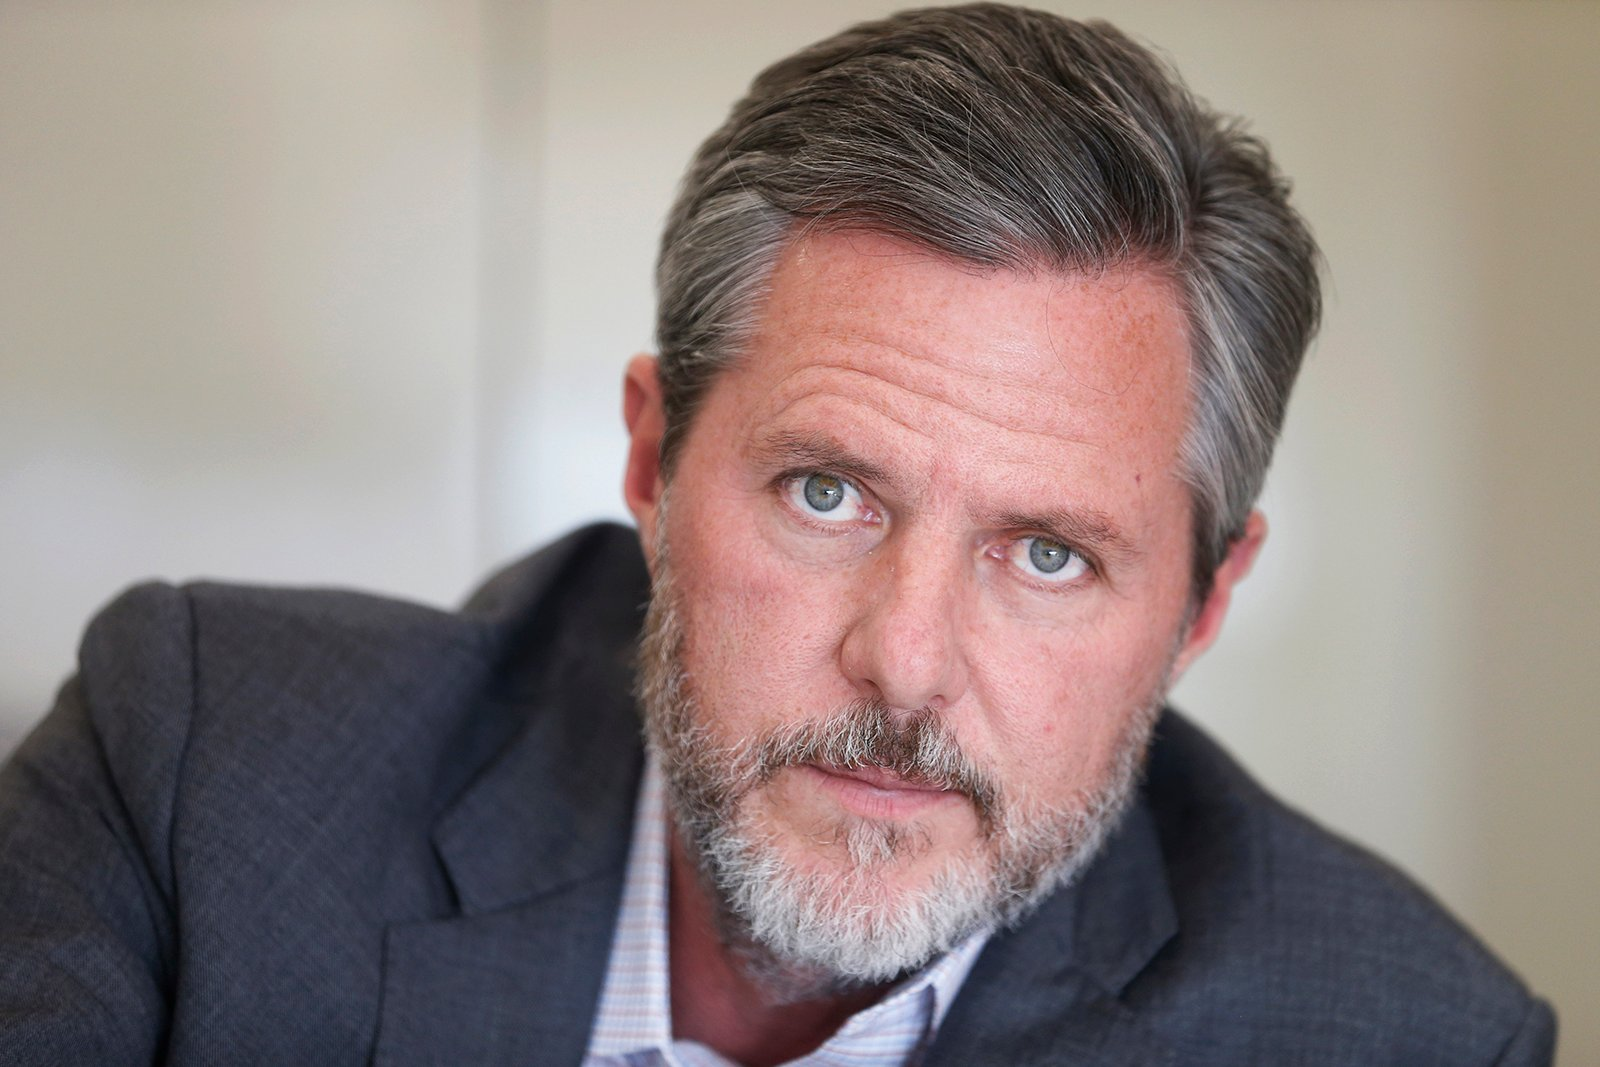 In this Nov. 16, 2016, photo, Liberty University President Jerry Falwell Jr. poses during an interview in his offices at the school in Lynchburg, Virginia. (AP Photo/Steve Helber)